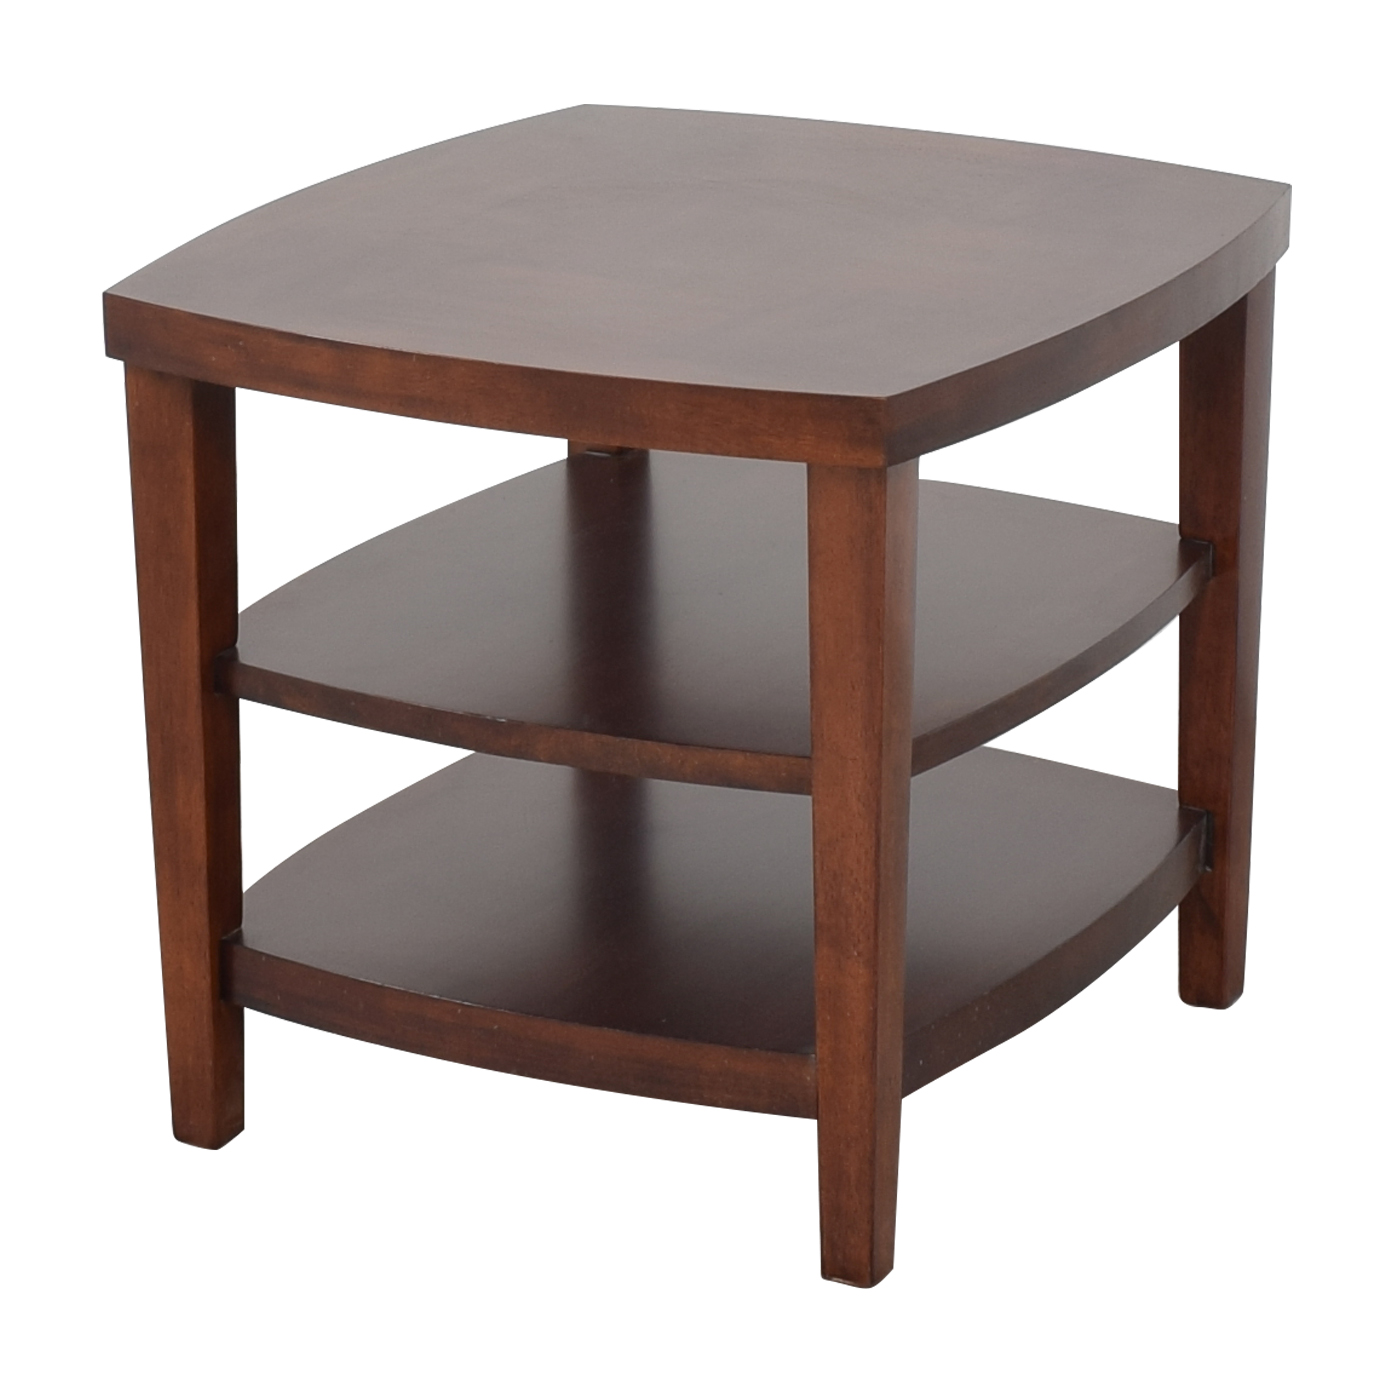 Lane Furniture Lane Furniture Three Tier End Table discount